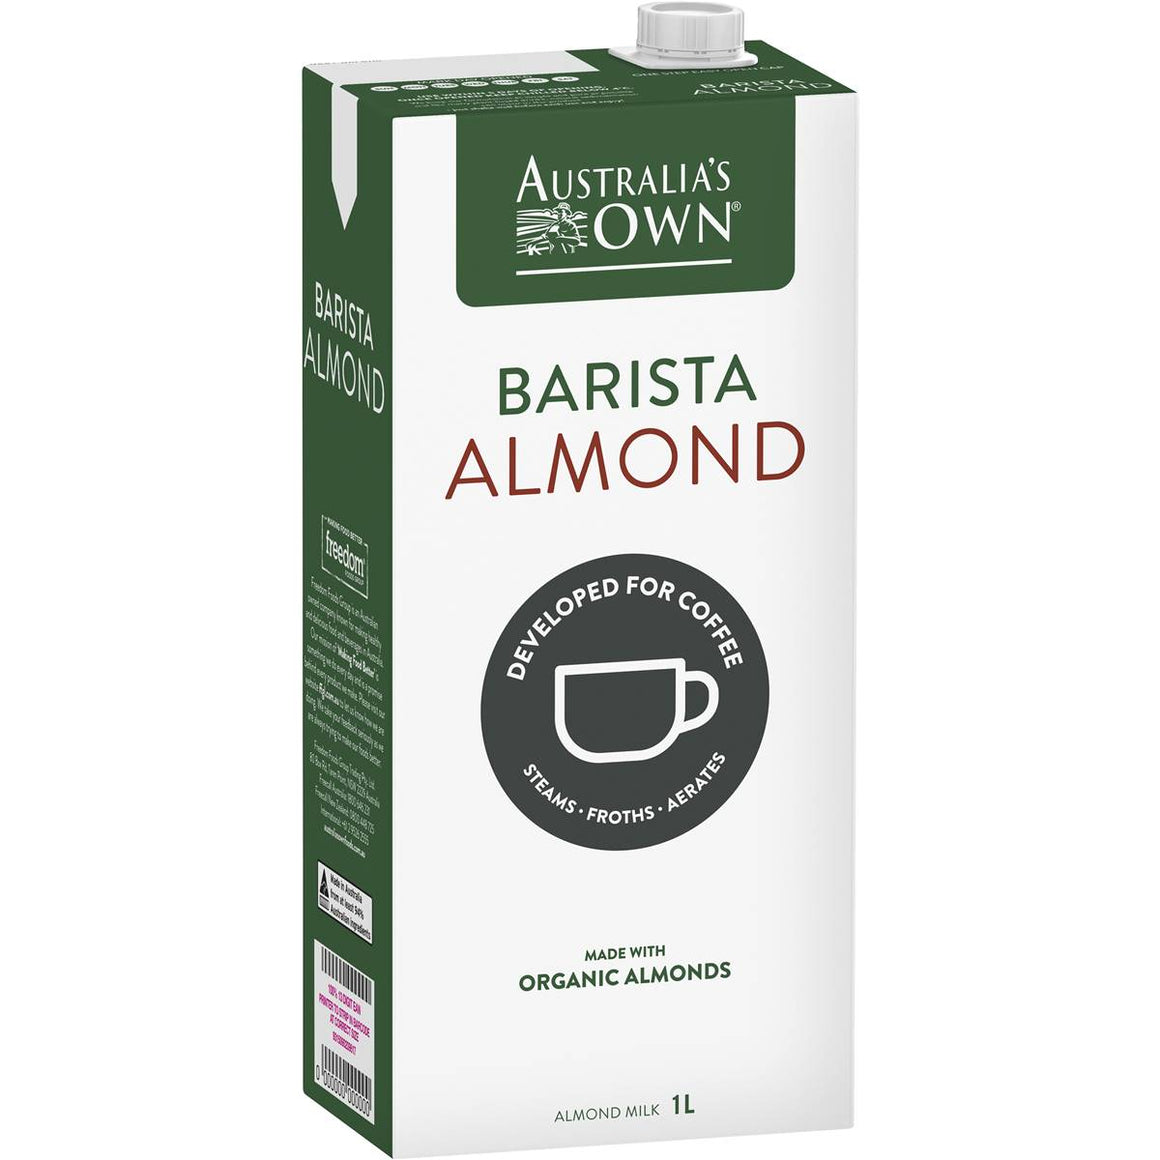 Australia's Own Barista Almond Milk 1L